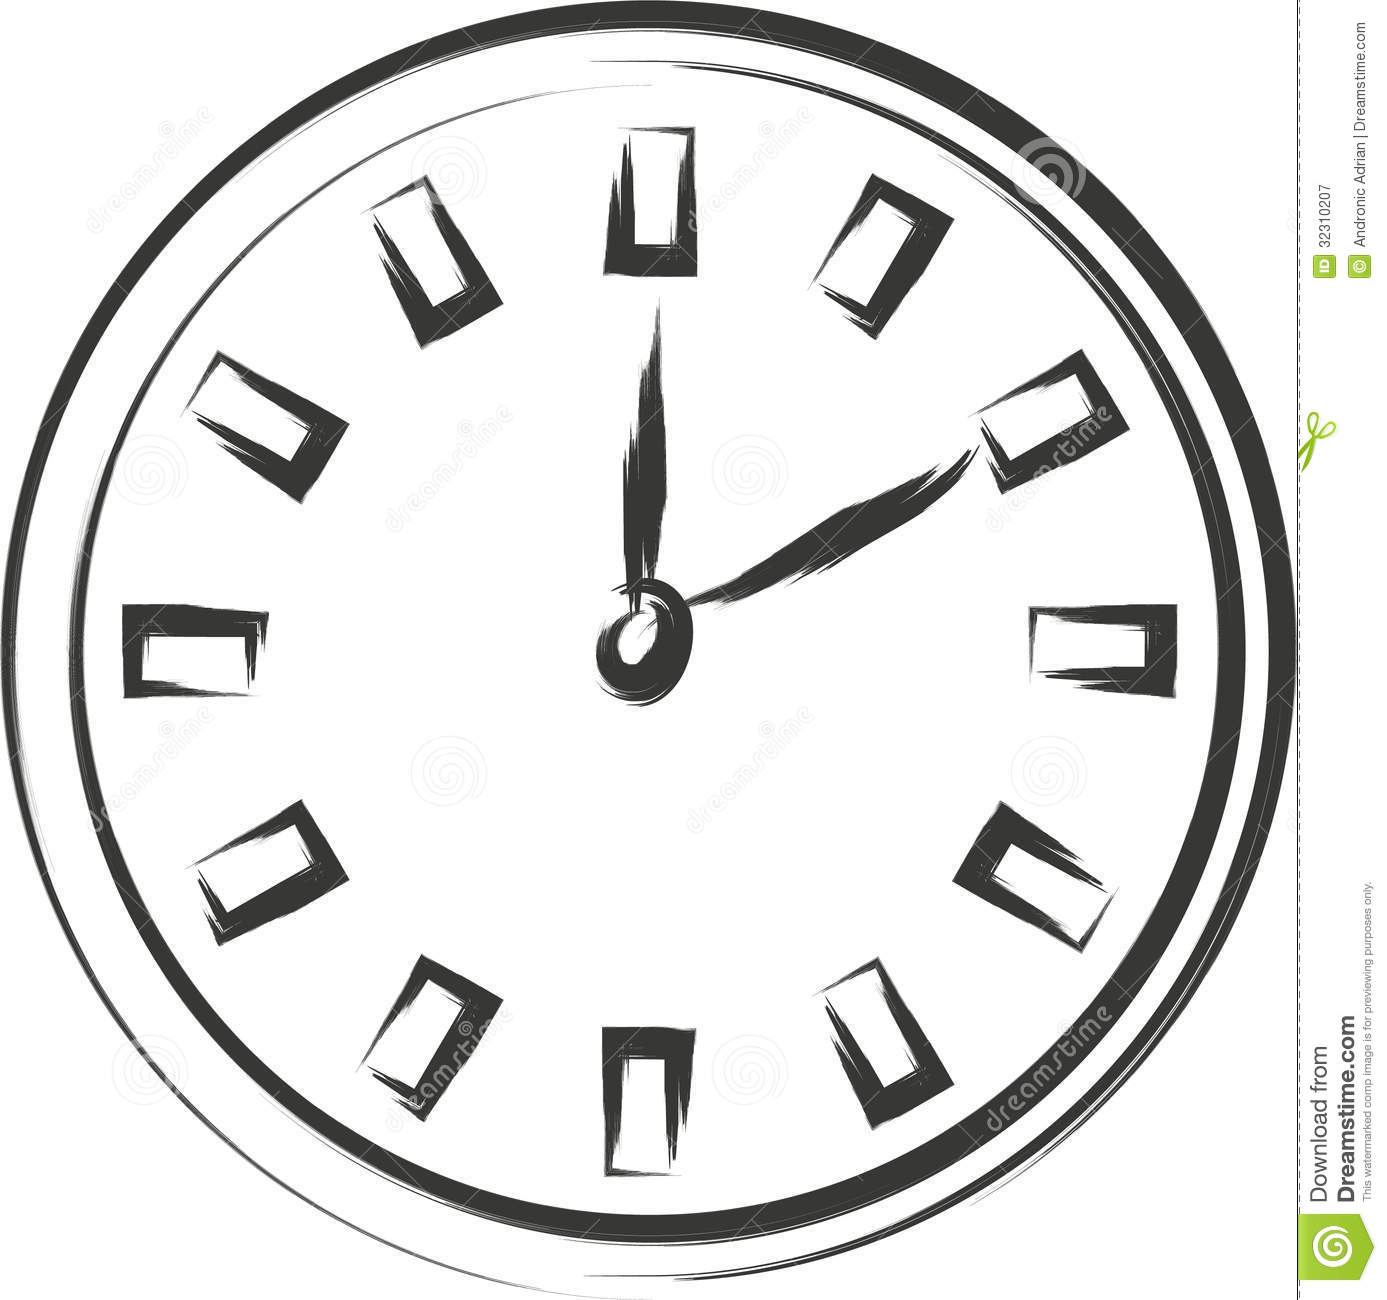 clock clipart black and white free - photo #10